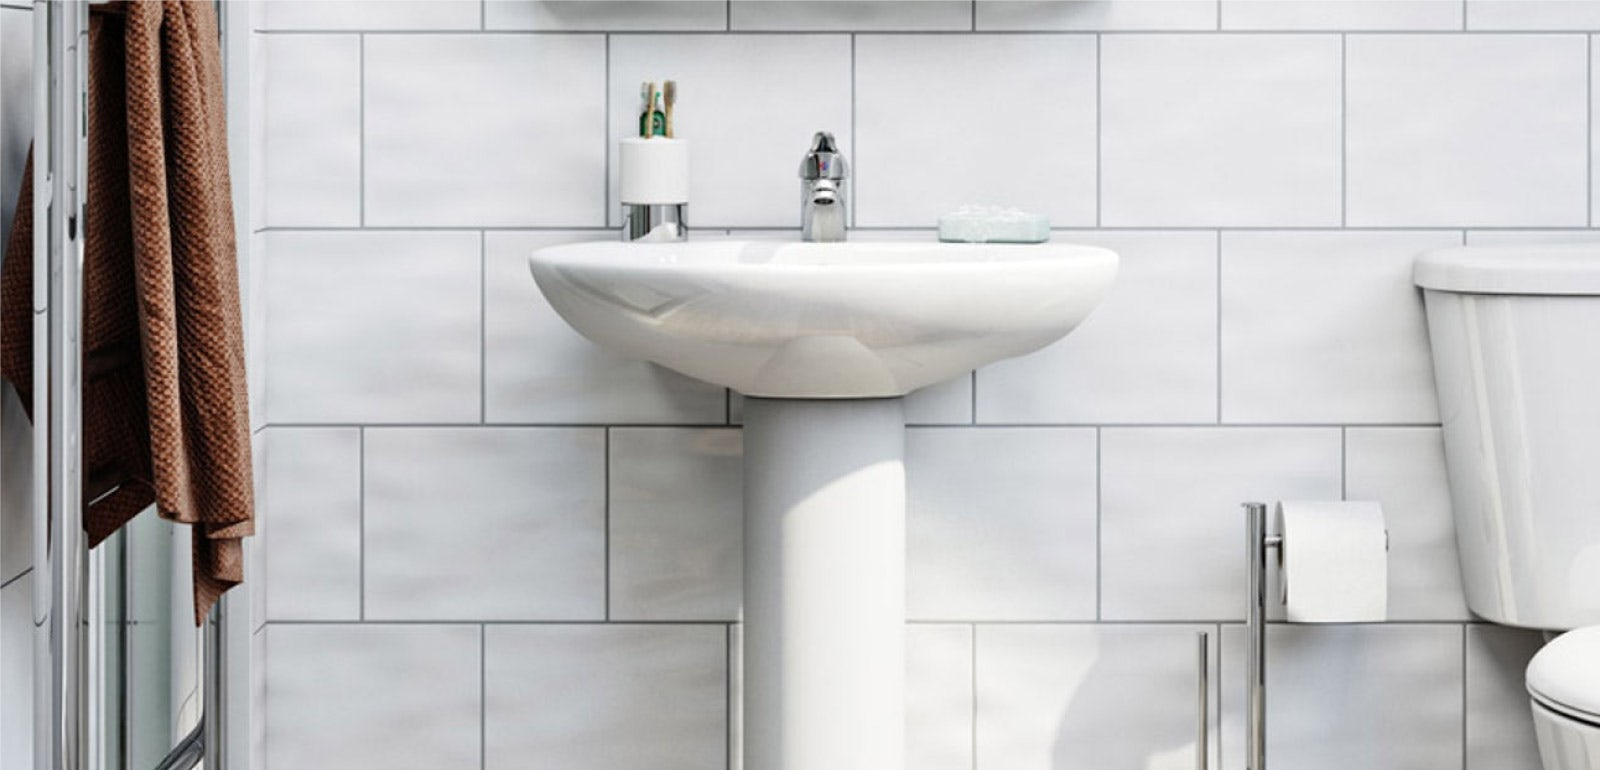 How to measure for a basin